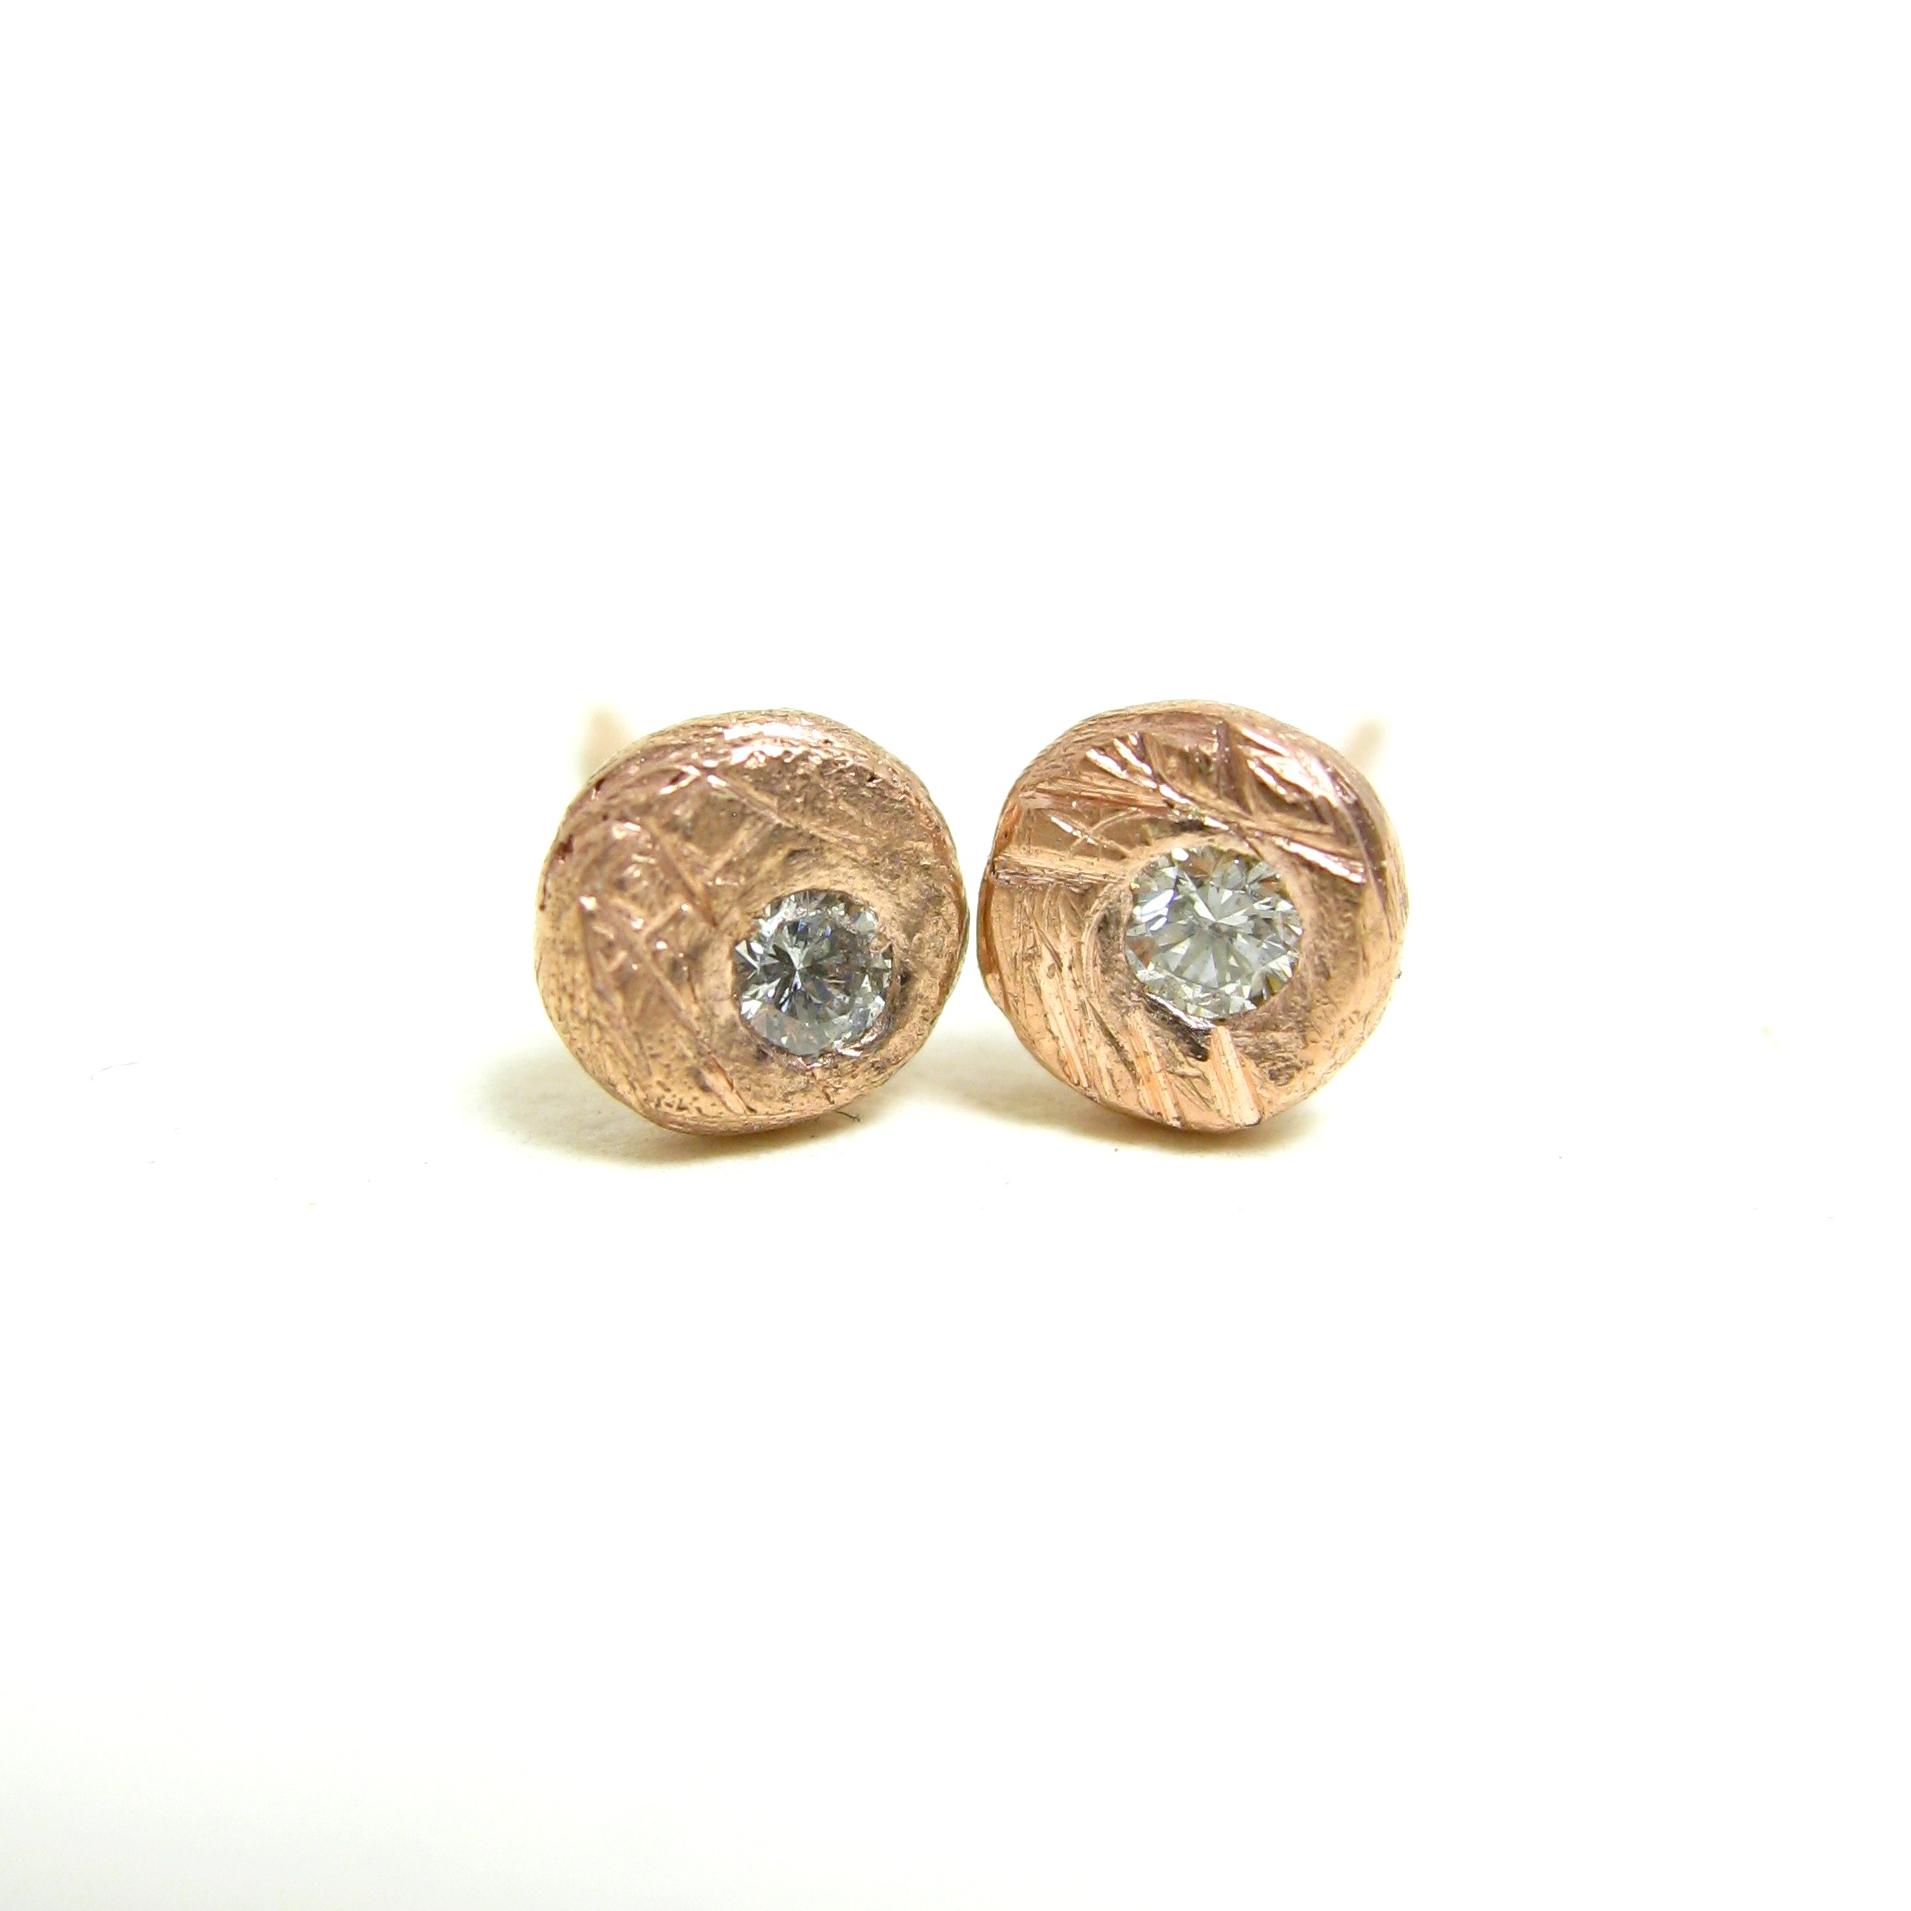 In the rough studs with recycled diamonds in rose gold